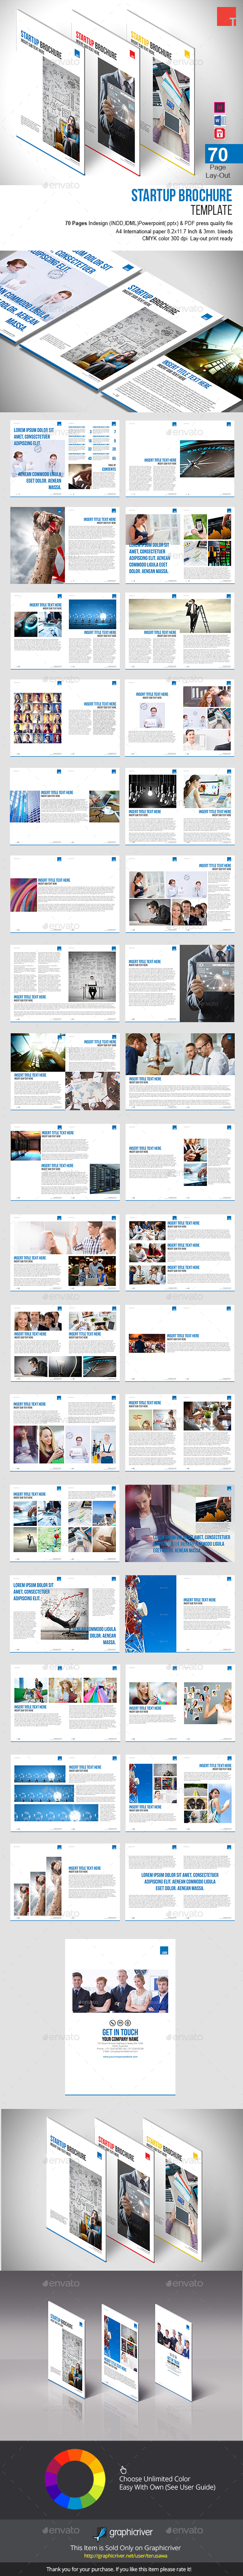 Startup Brochure Template - Informational Brochures